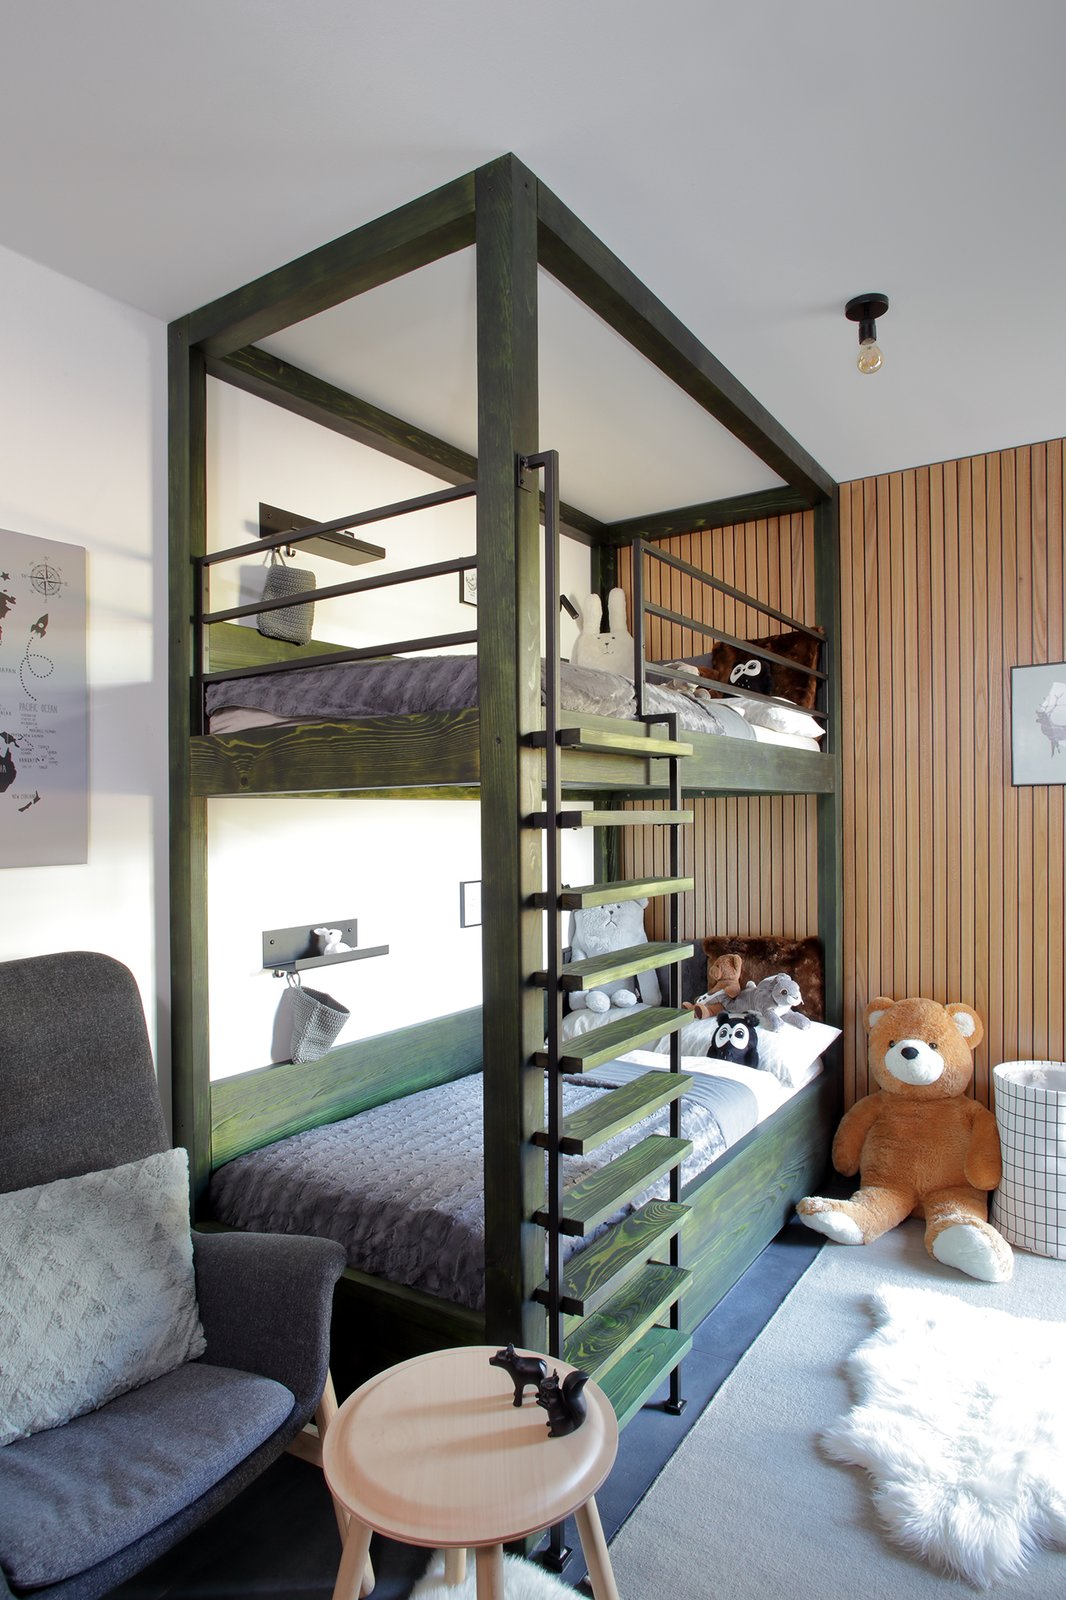 Kids Room, Bunks, Ceramic Tile Floor, Pre-Teen Age, Bed, Neutral Gender, and Bedroom Room Type bunk bed in children room - another green element in the interior  Mountain Apartment in Ore Mountain, Czech Republic by Martina Schultes www.martinaschultes.com